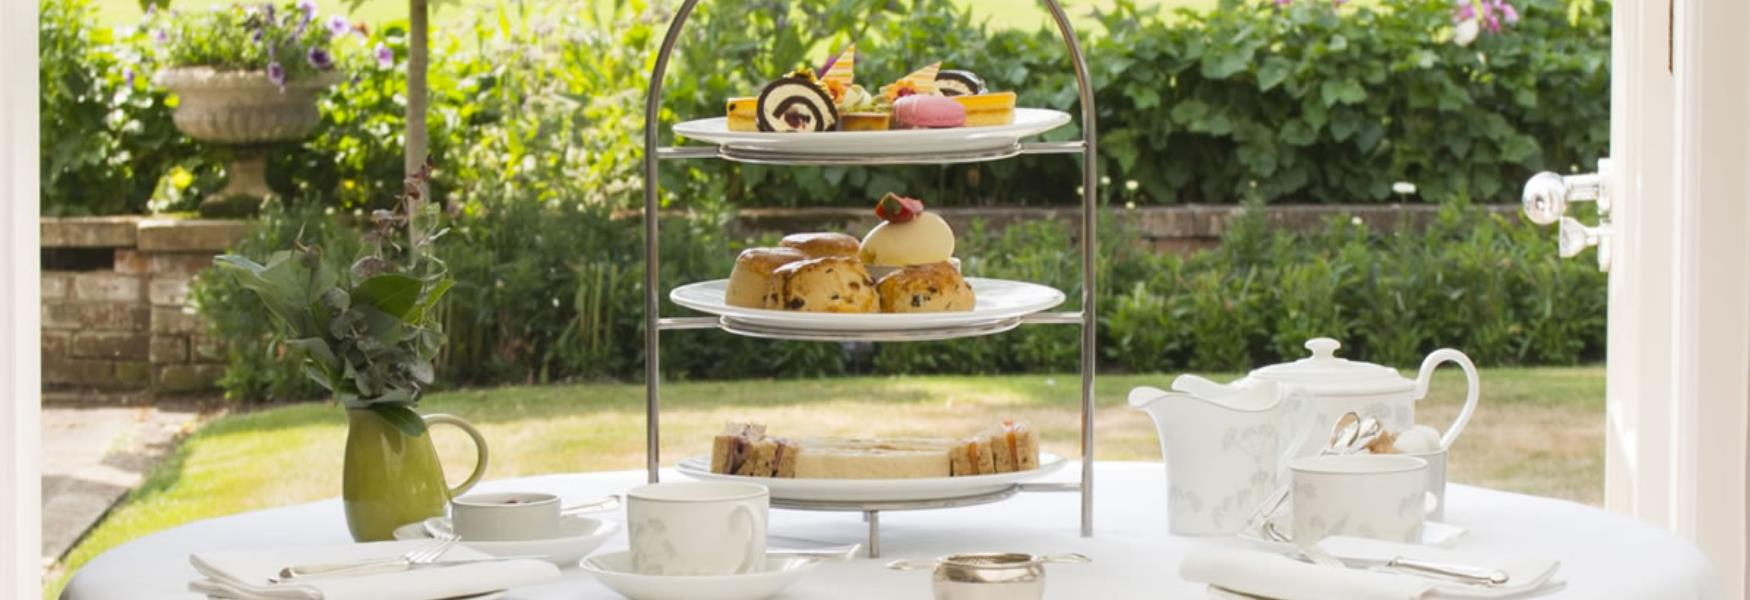 afternoon tea at Chewton glen hotel in the new forest